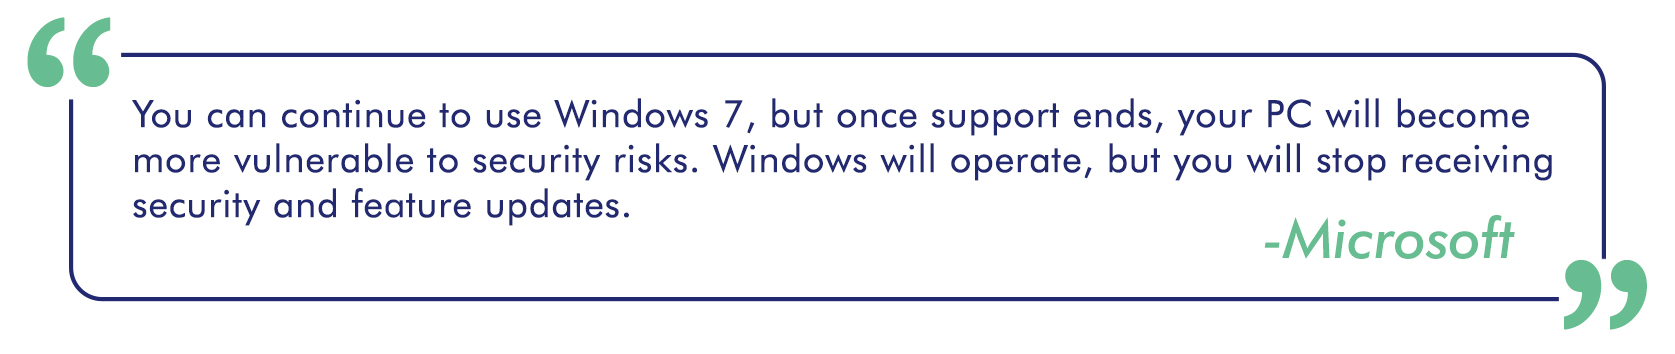 "A quote from Microsoft stating ""You can continue to use Windows 7, but once support ends, your PC will become more vulnerable to security risks. Windows will operate, but you will stop receiving security and feature updates."""